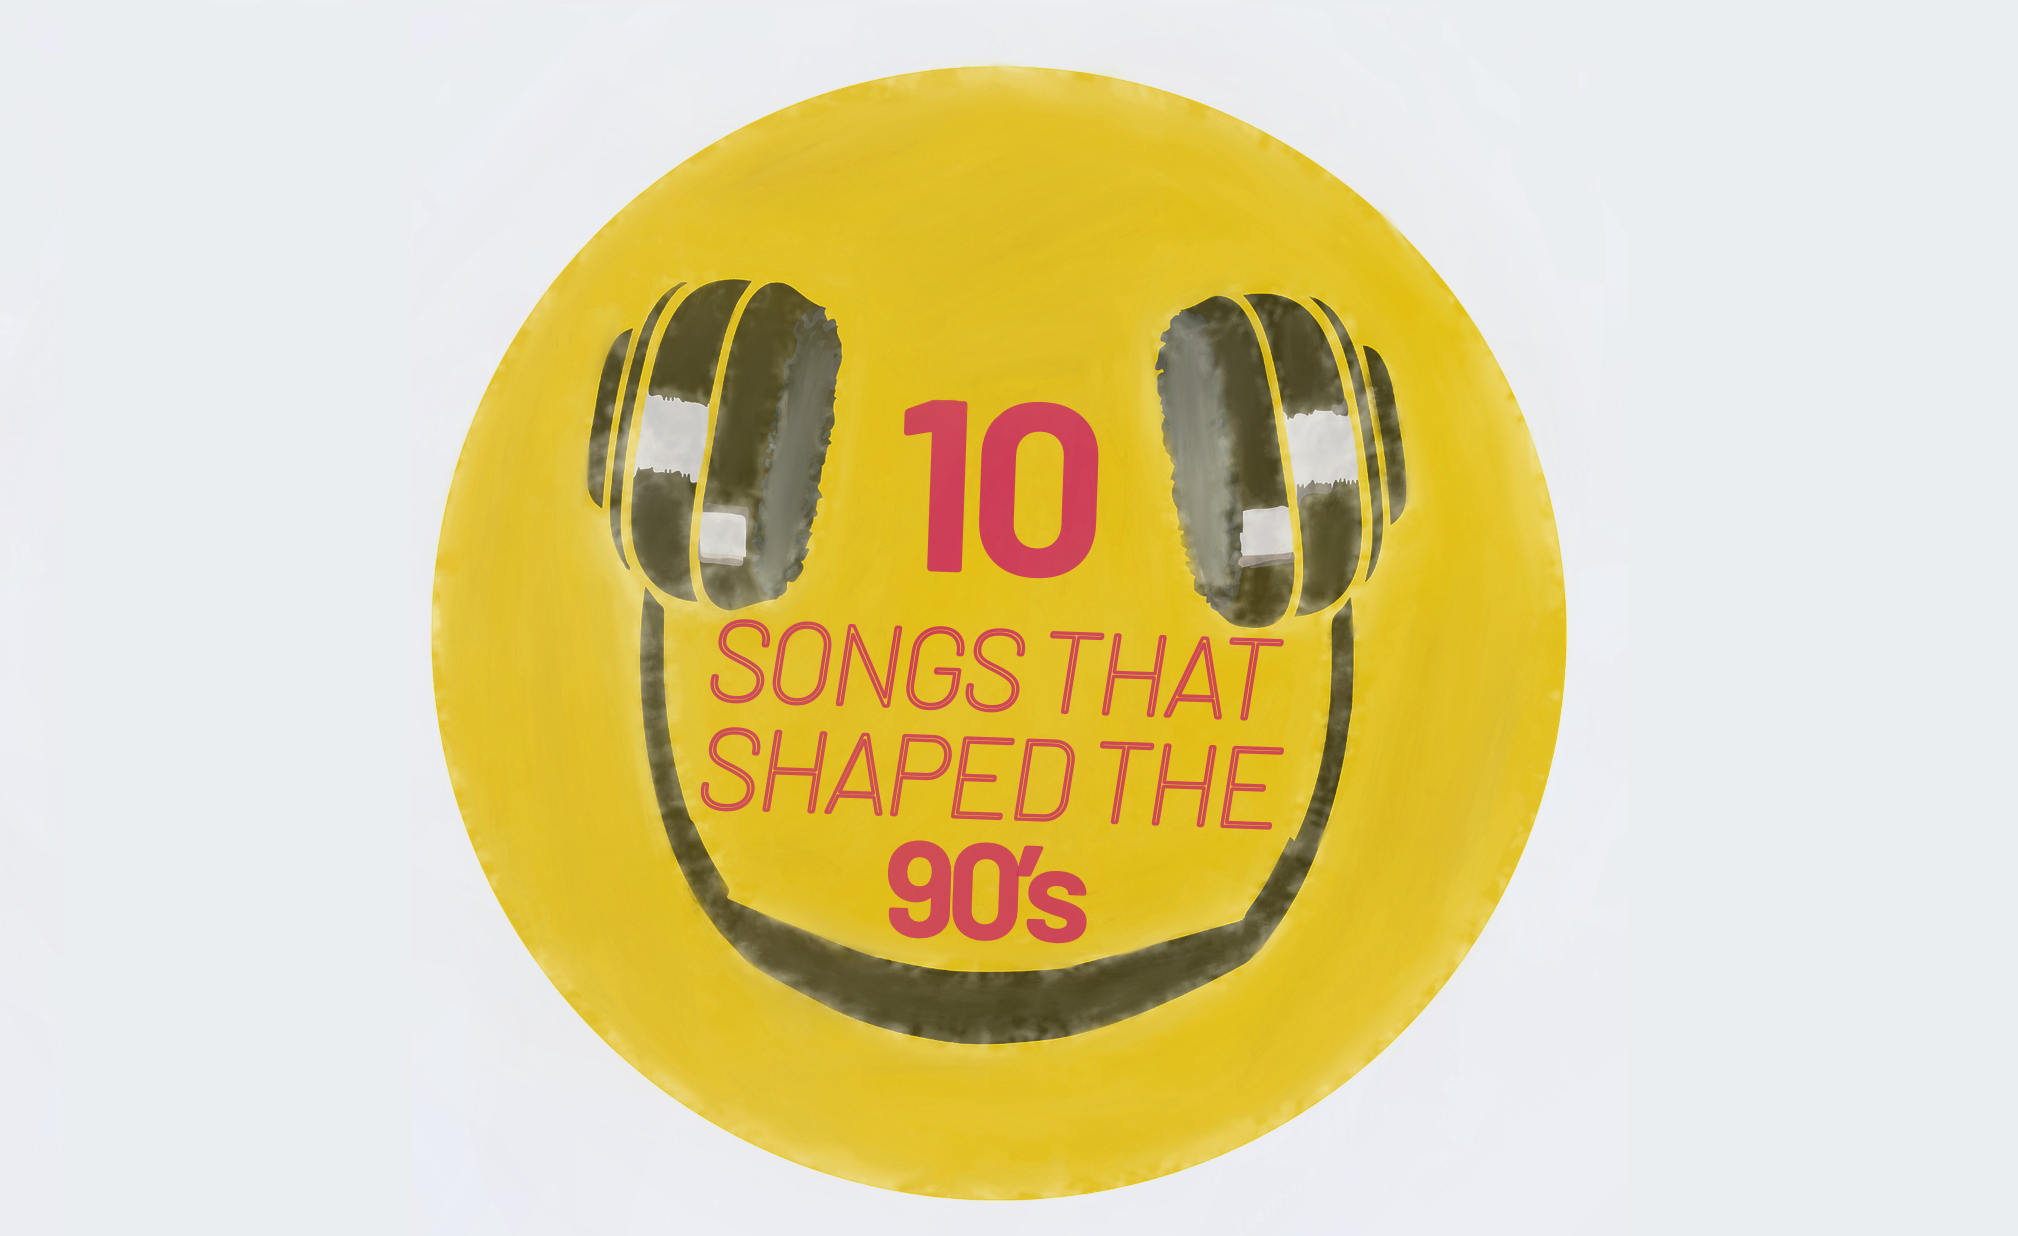 10 songs that shaped the 90s